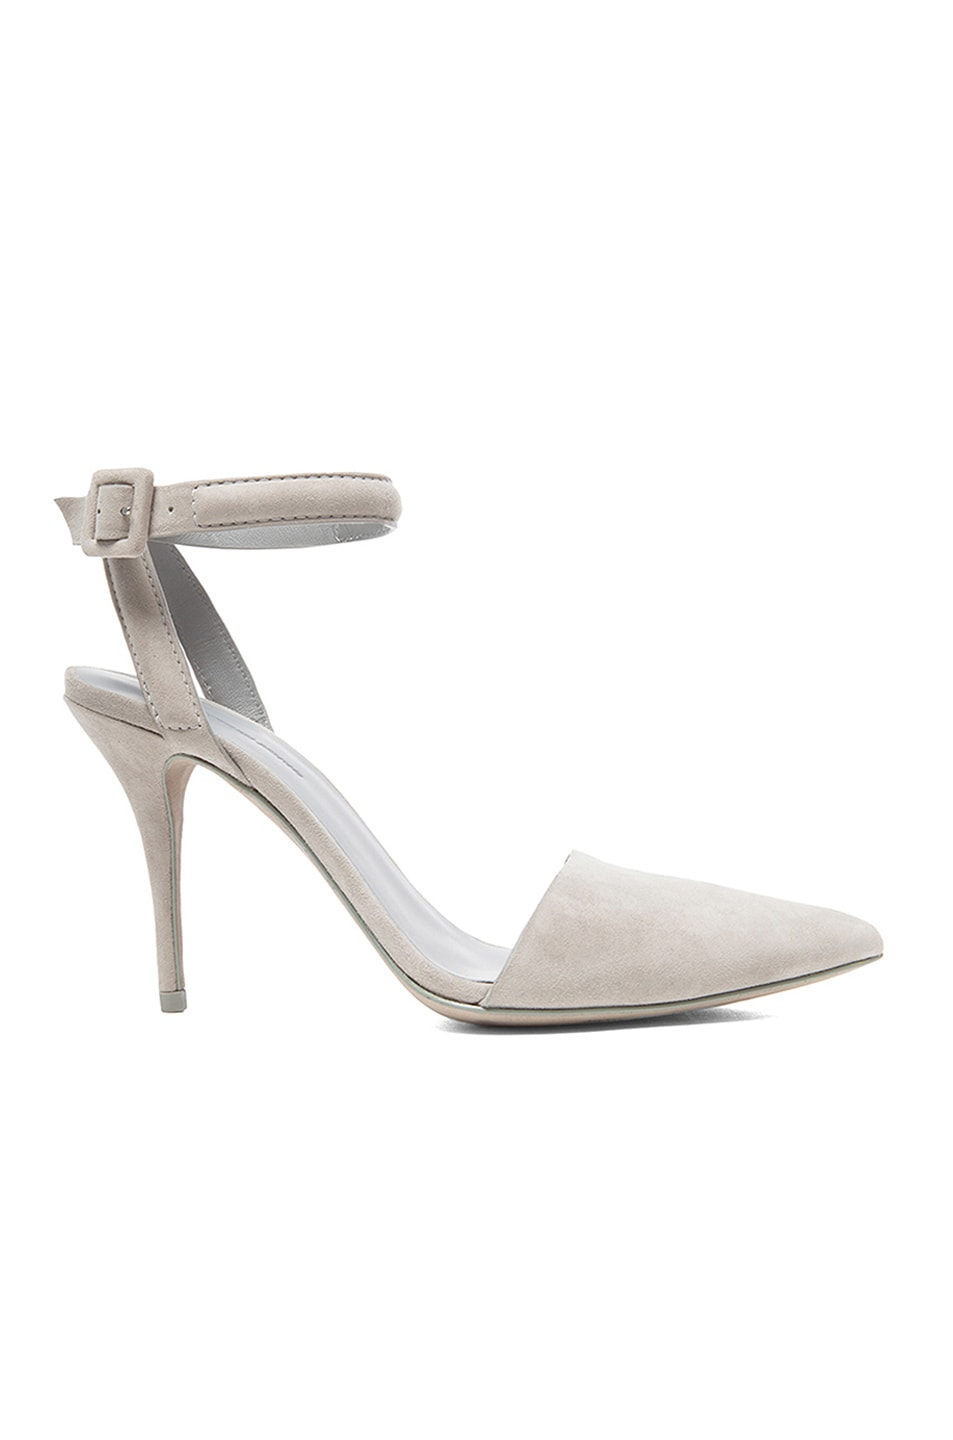 Image 1 of Alexander Wang Lovisa Suede Ankle Strap Pumps in Oyster